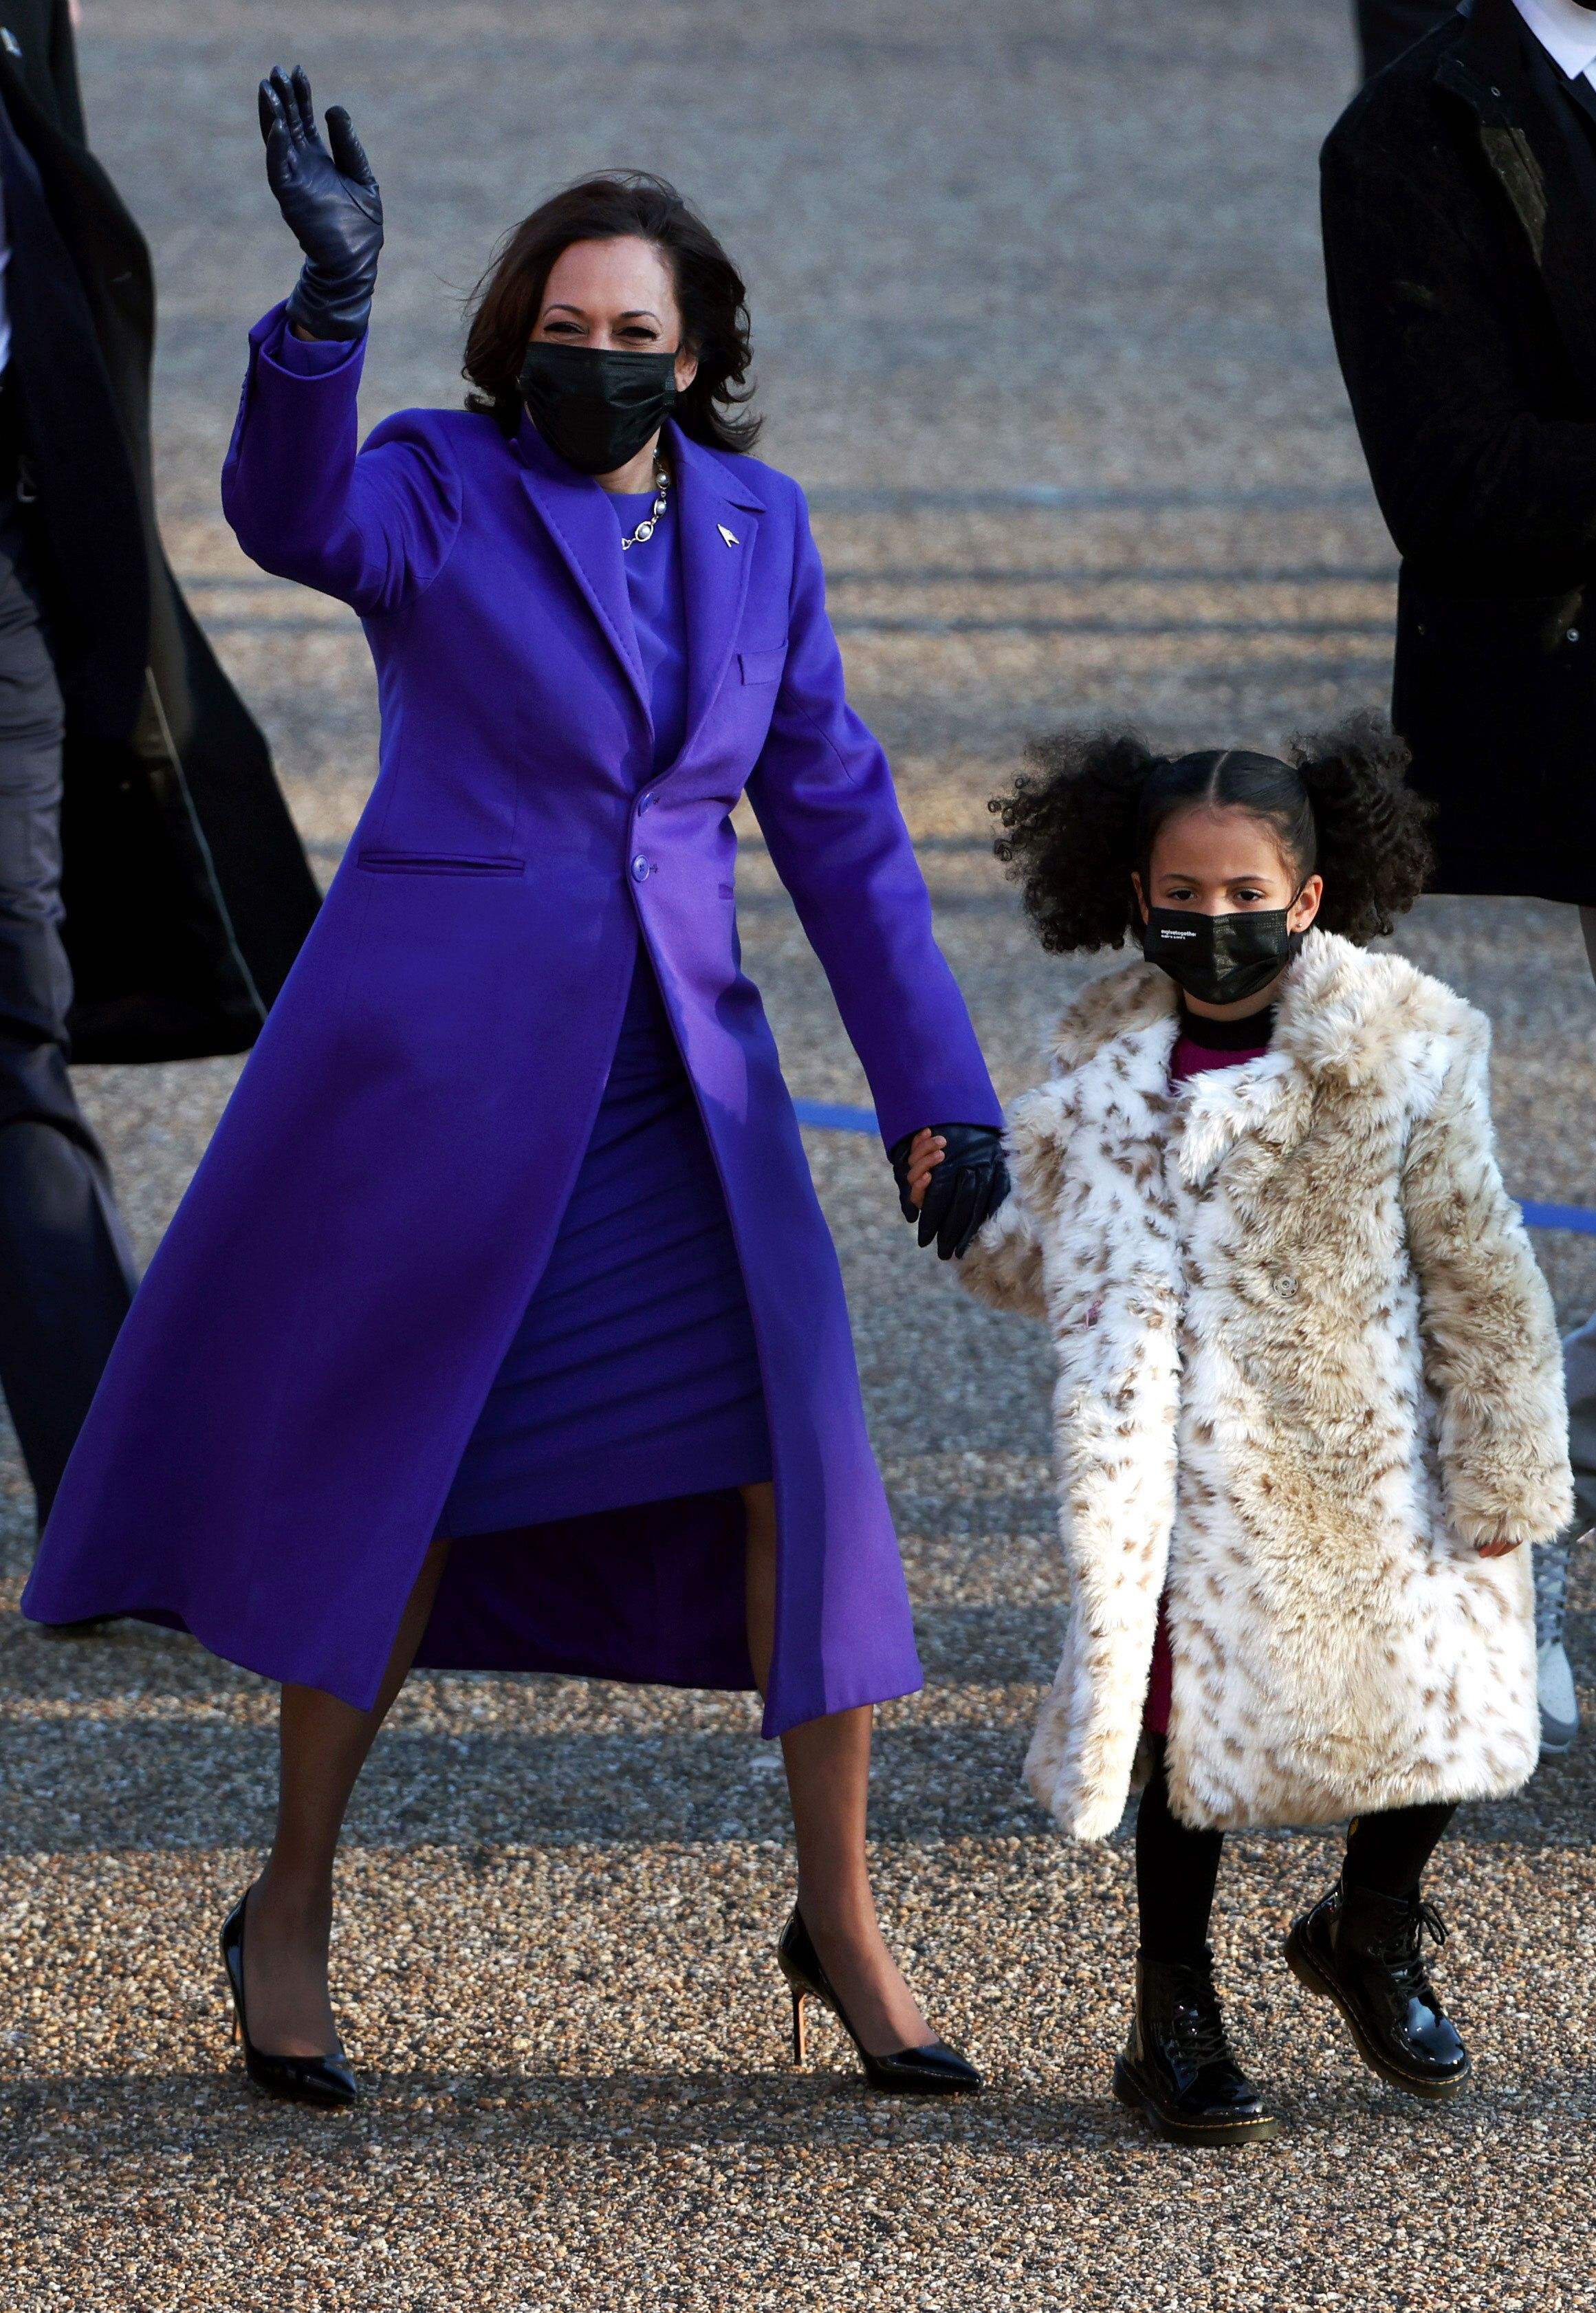 Kamala Harris's great-nieces recreated one of her outfits on Inauguration Day